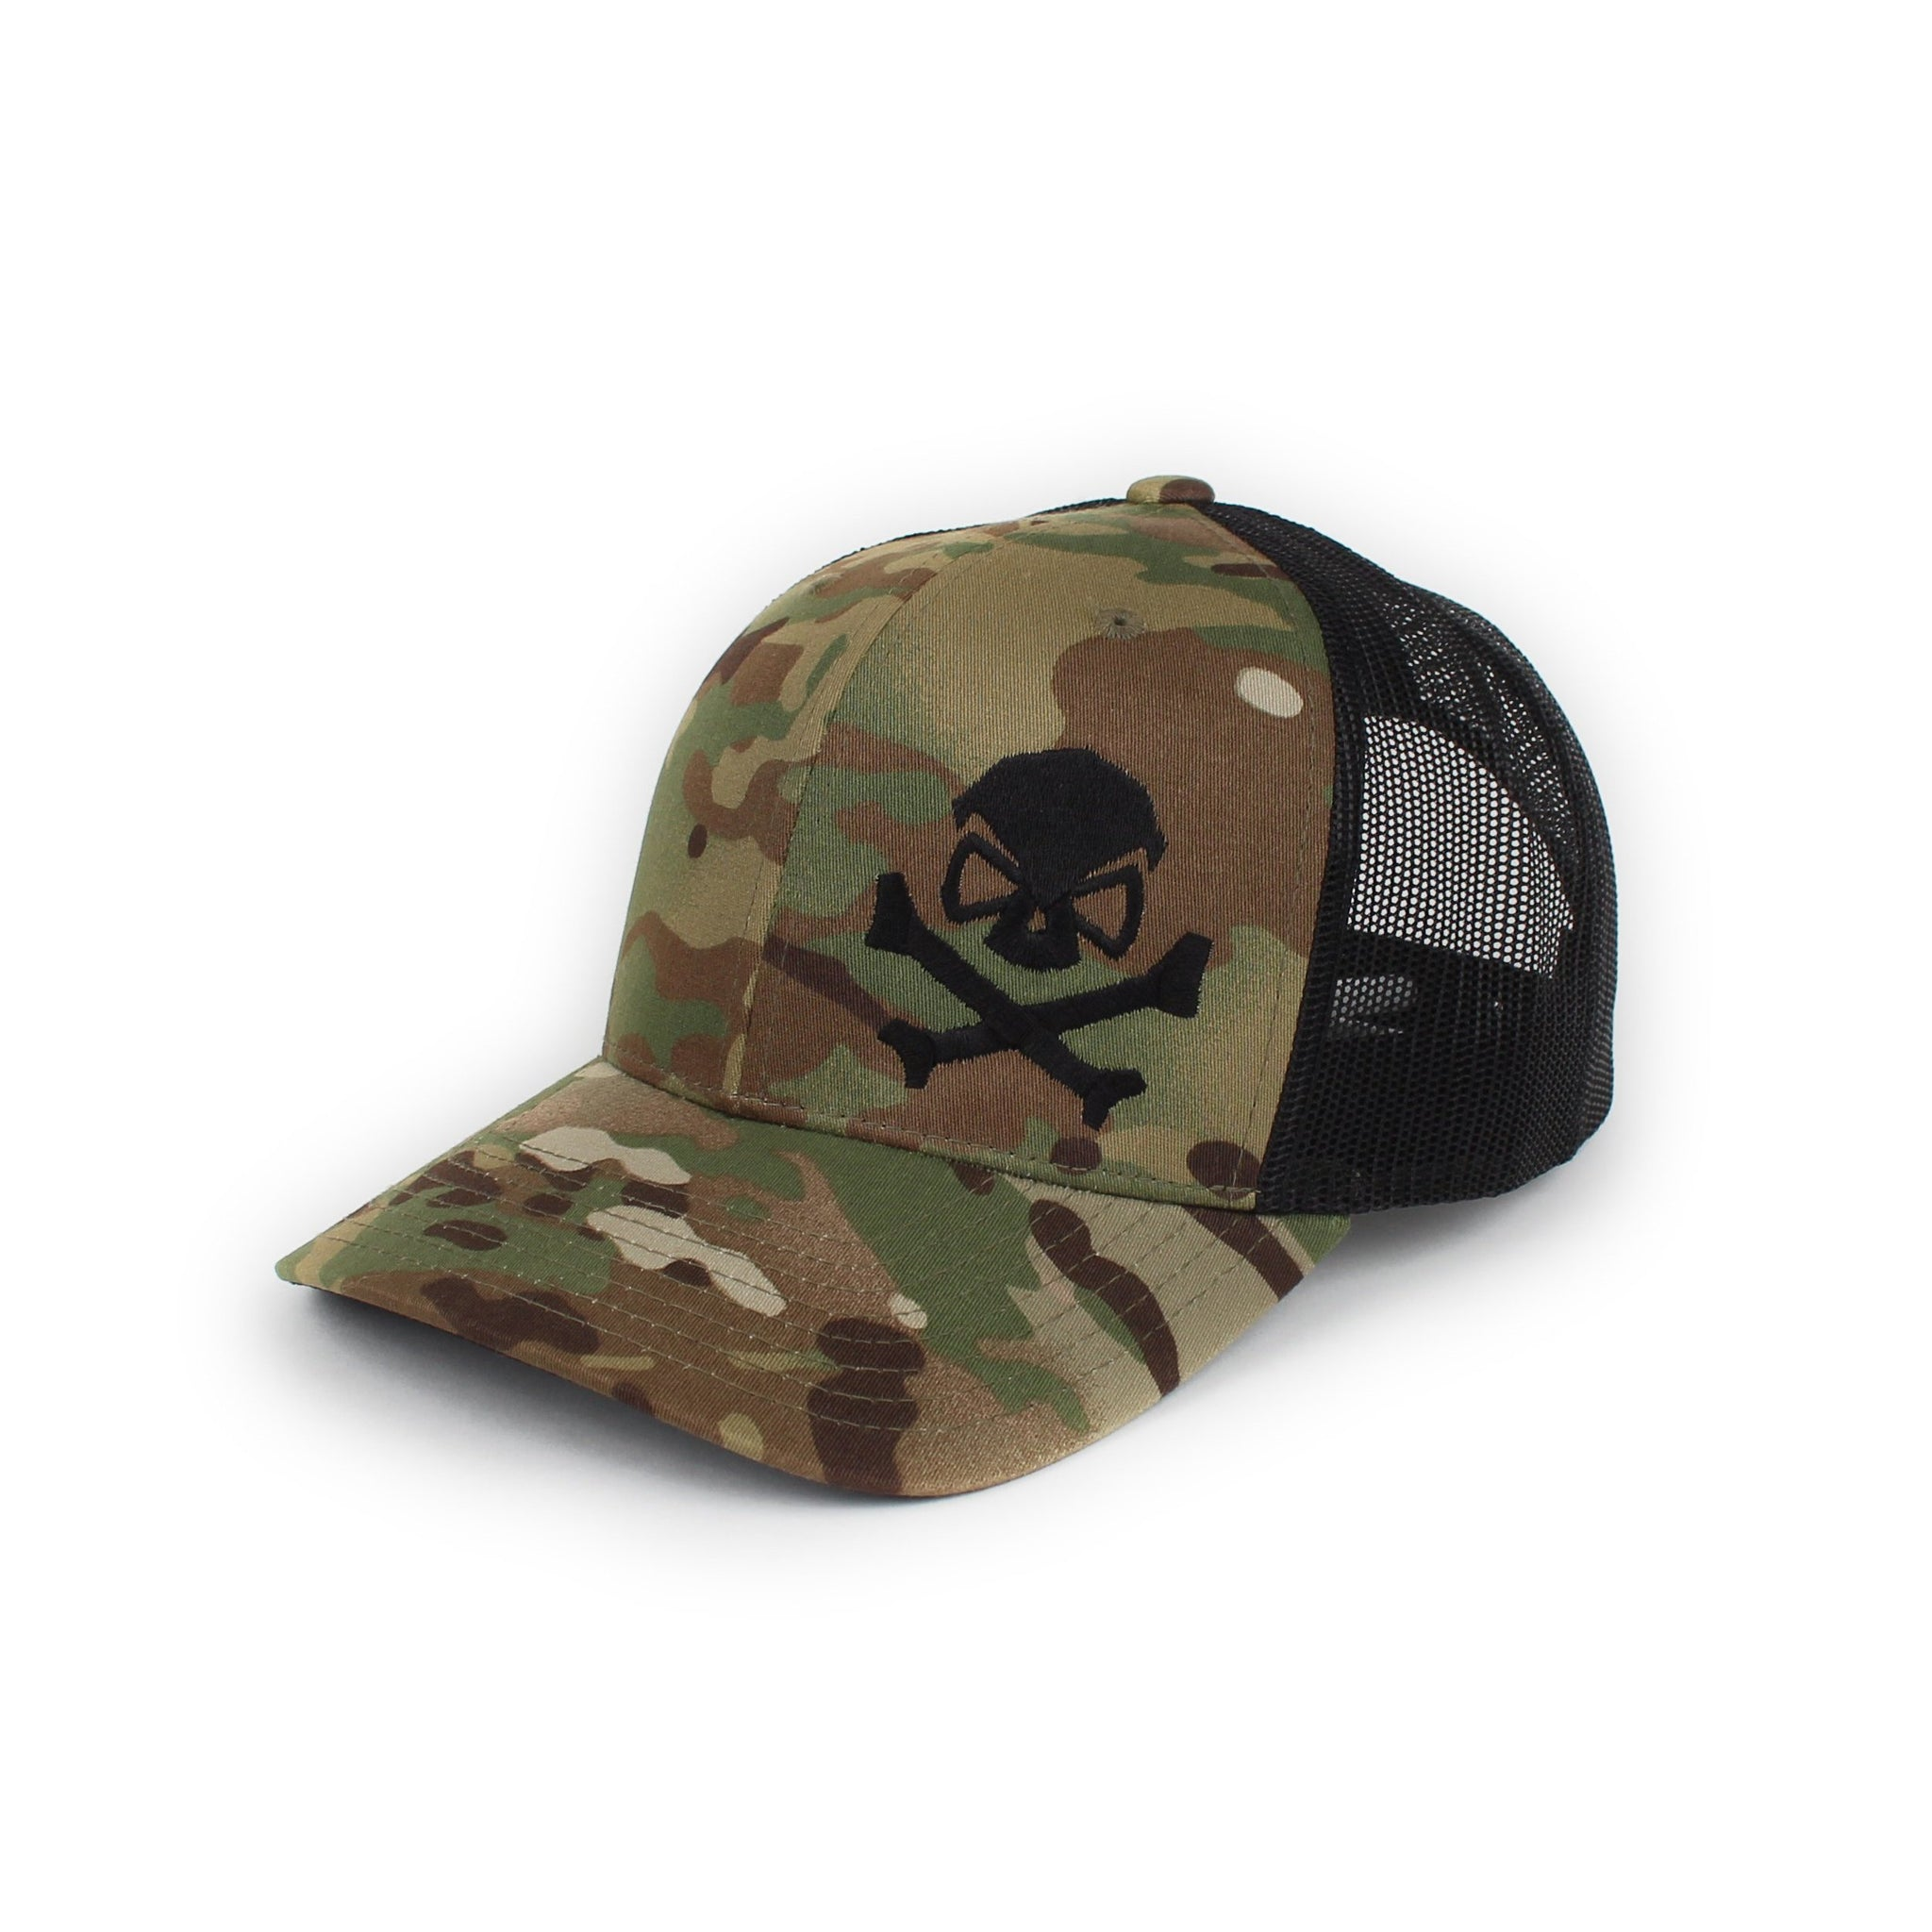 Skull & Bones Trucker - GreenMultiCam/Black - Hats - Pipe Hitters Union